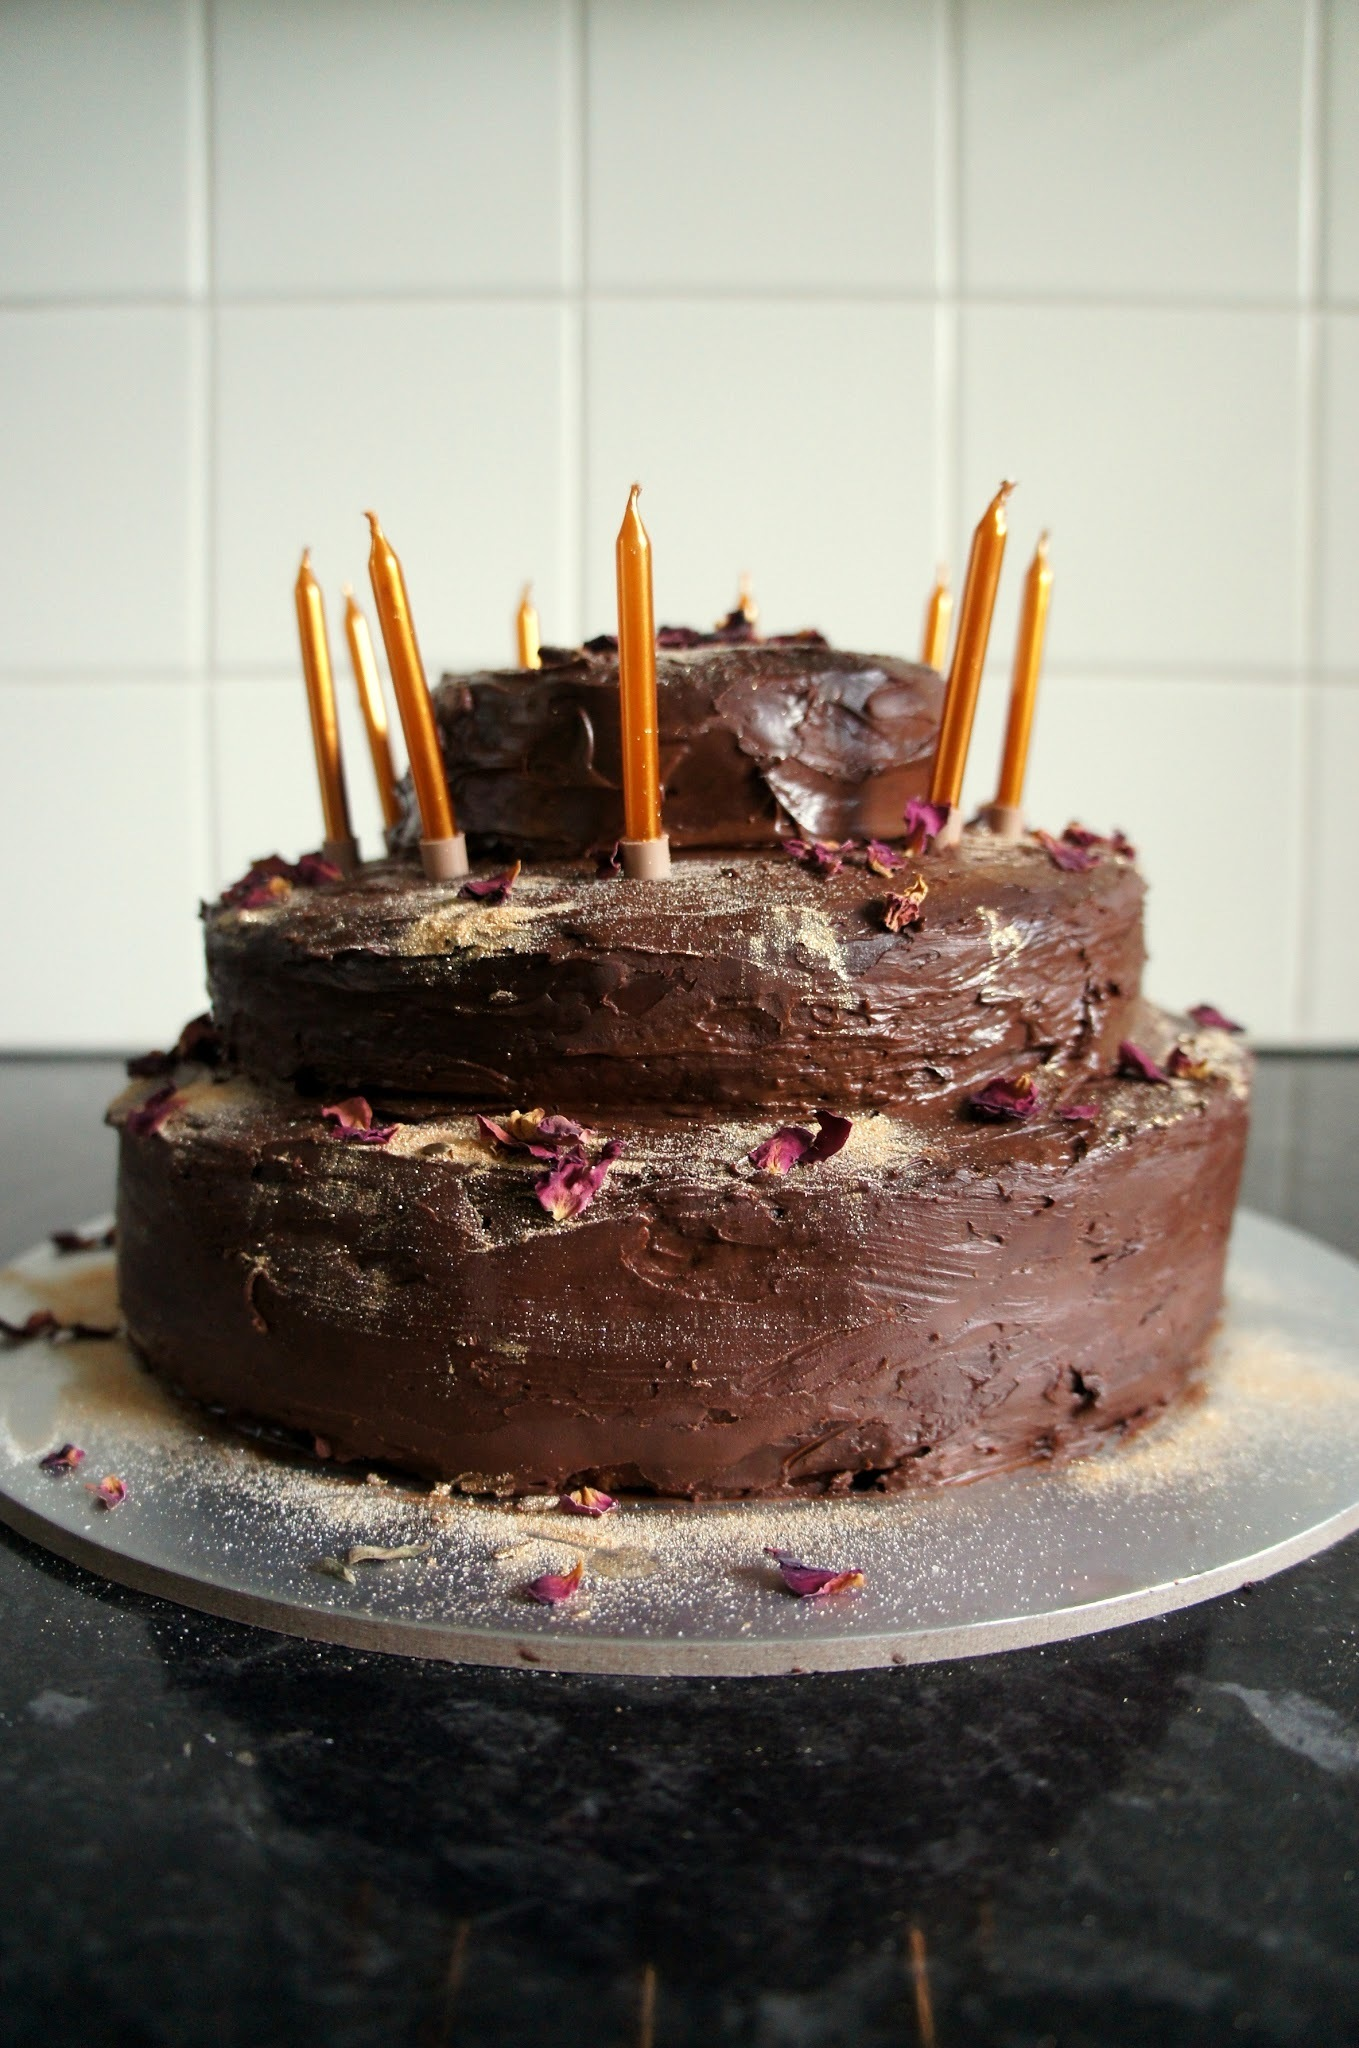 Tiered orange sponge cake with chocolate ganache icing {vegan and diabetes friendly}